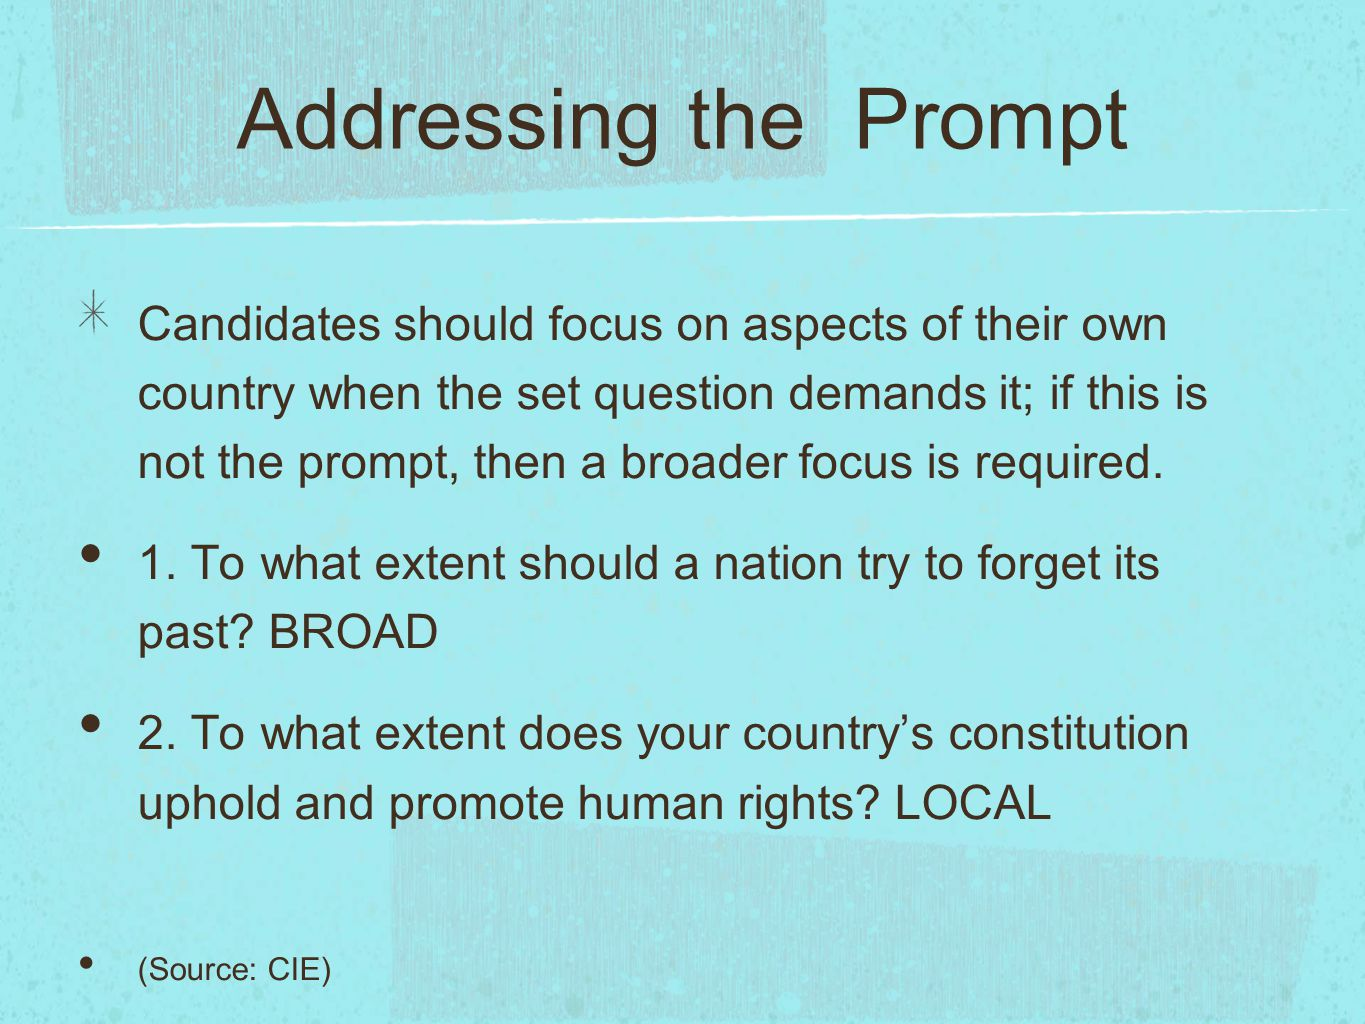 Addressing the Prompt Candidates should focus on aspects of their own country when the set question demands it; if this is not the prompt, then a broader focus is required.